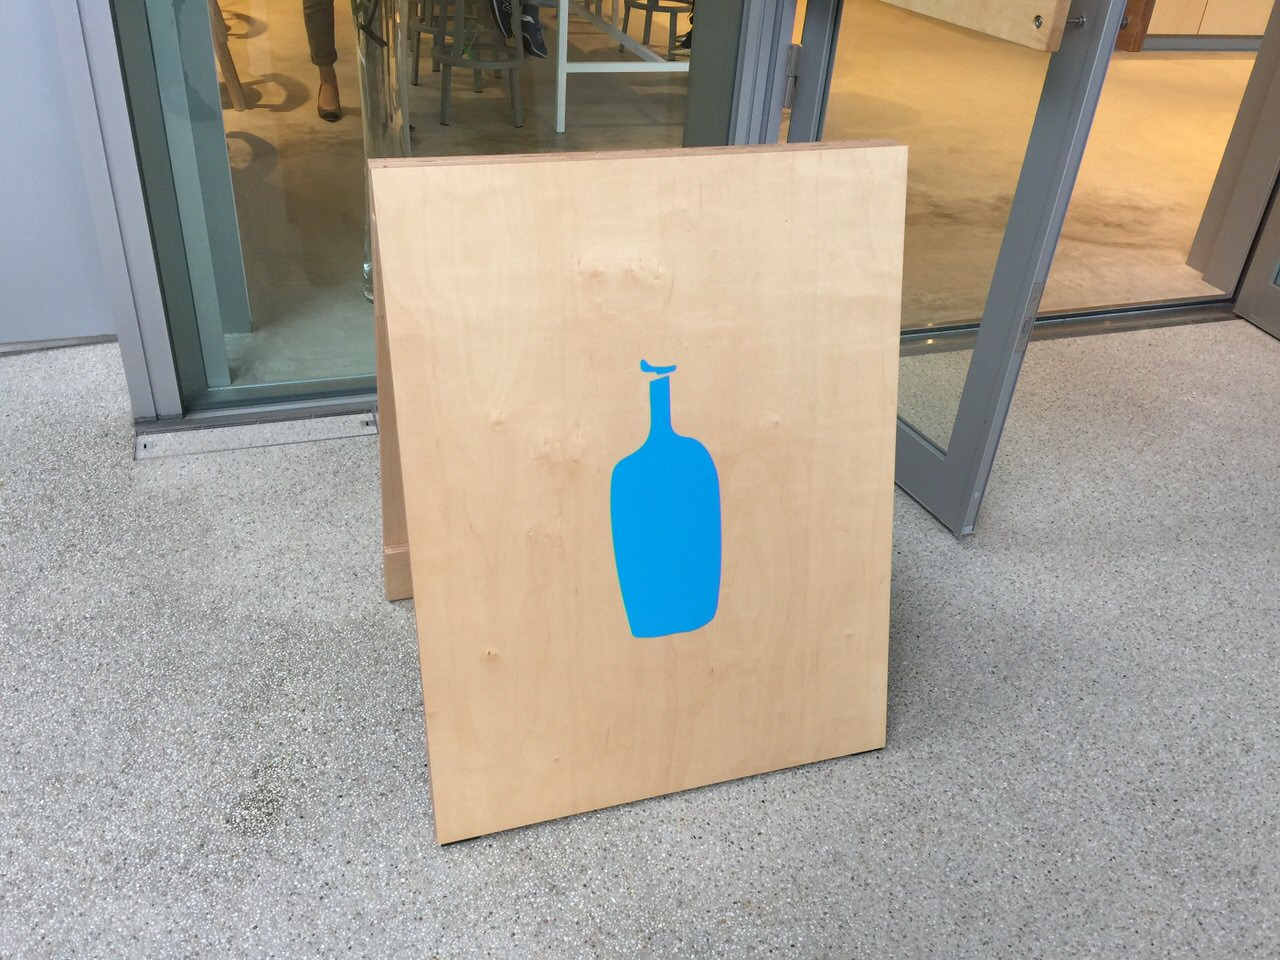 Blue bottle roppongi 8641